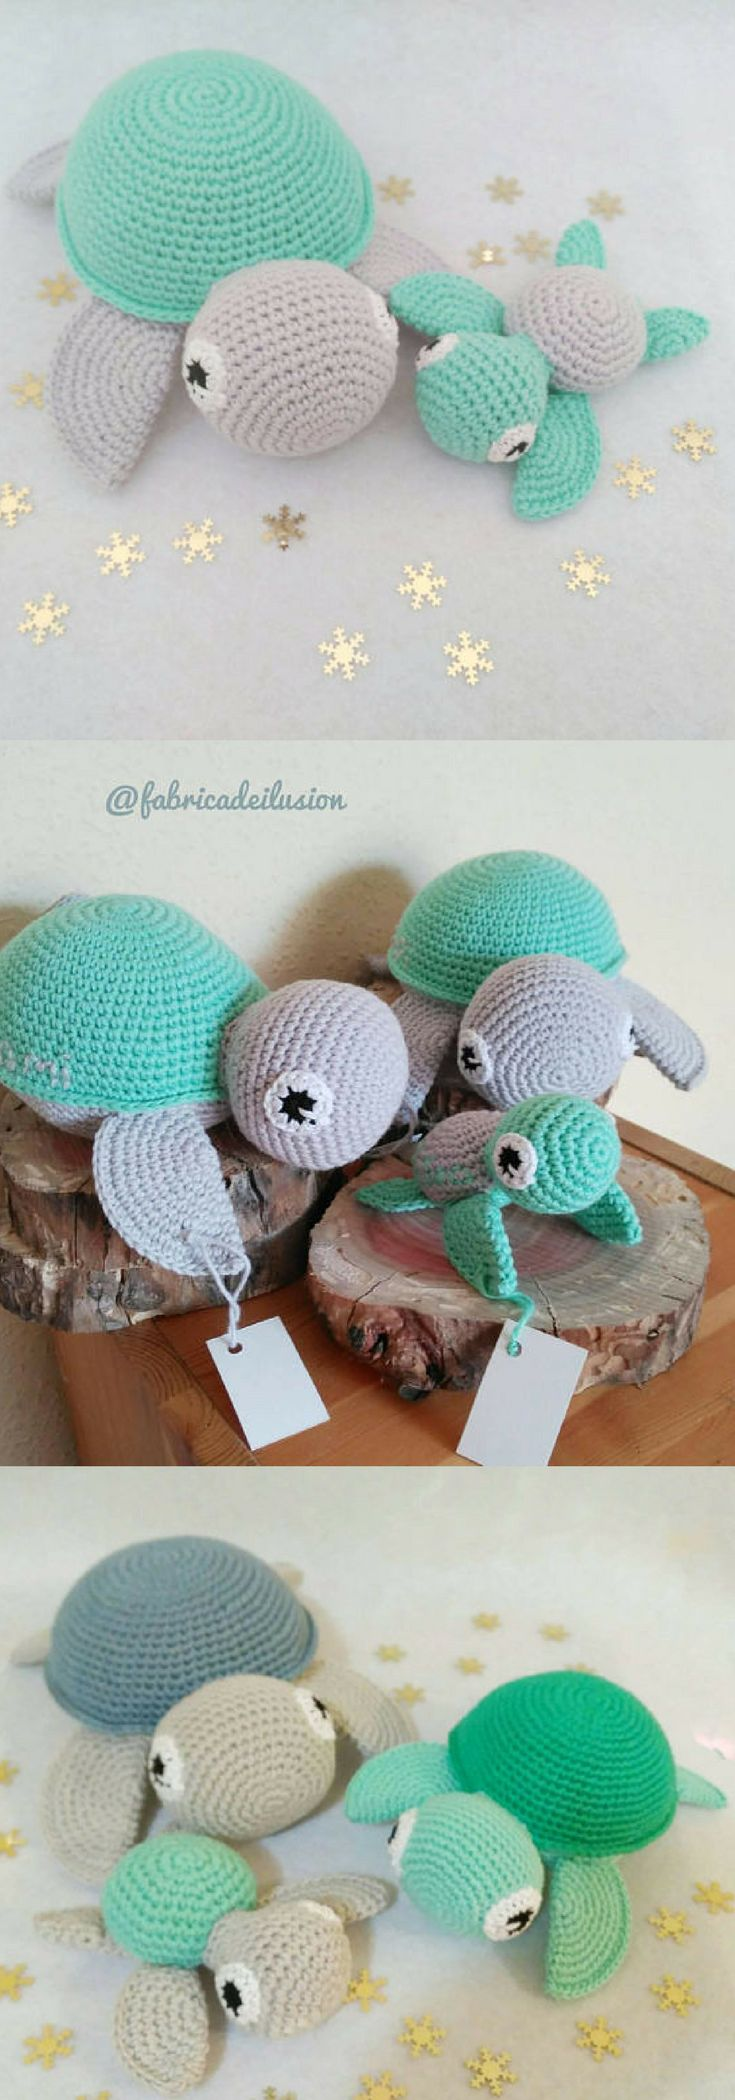 Amigurumi Sea Turtle Crochet Pattern Printable PDF | Crocheted Turtle  Family #ad #amigurumi #